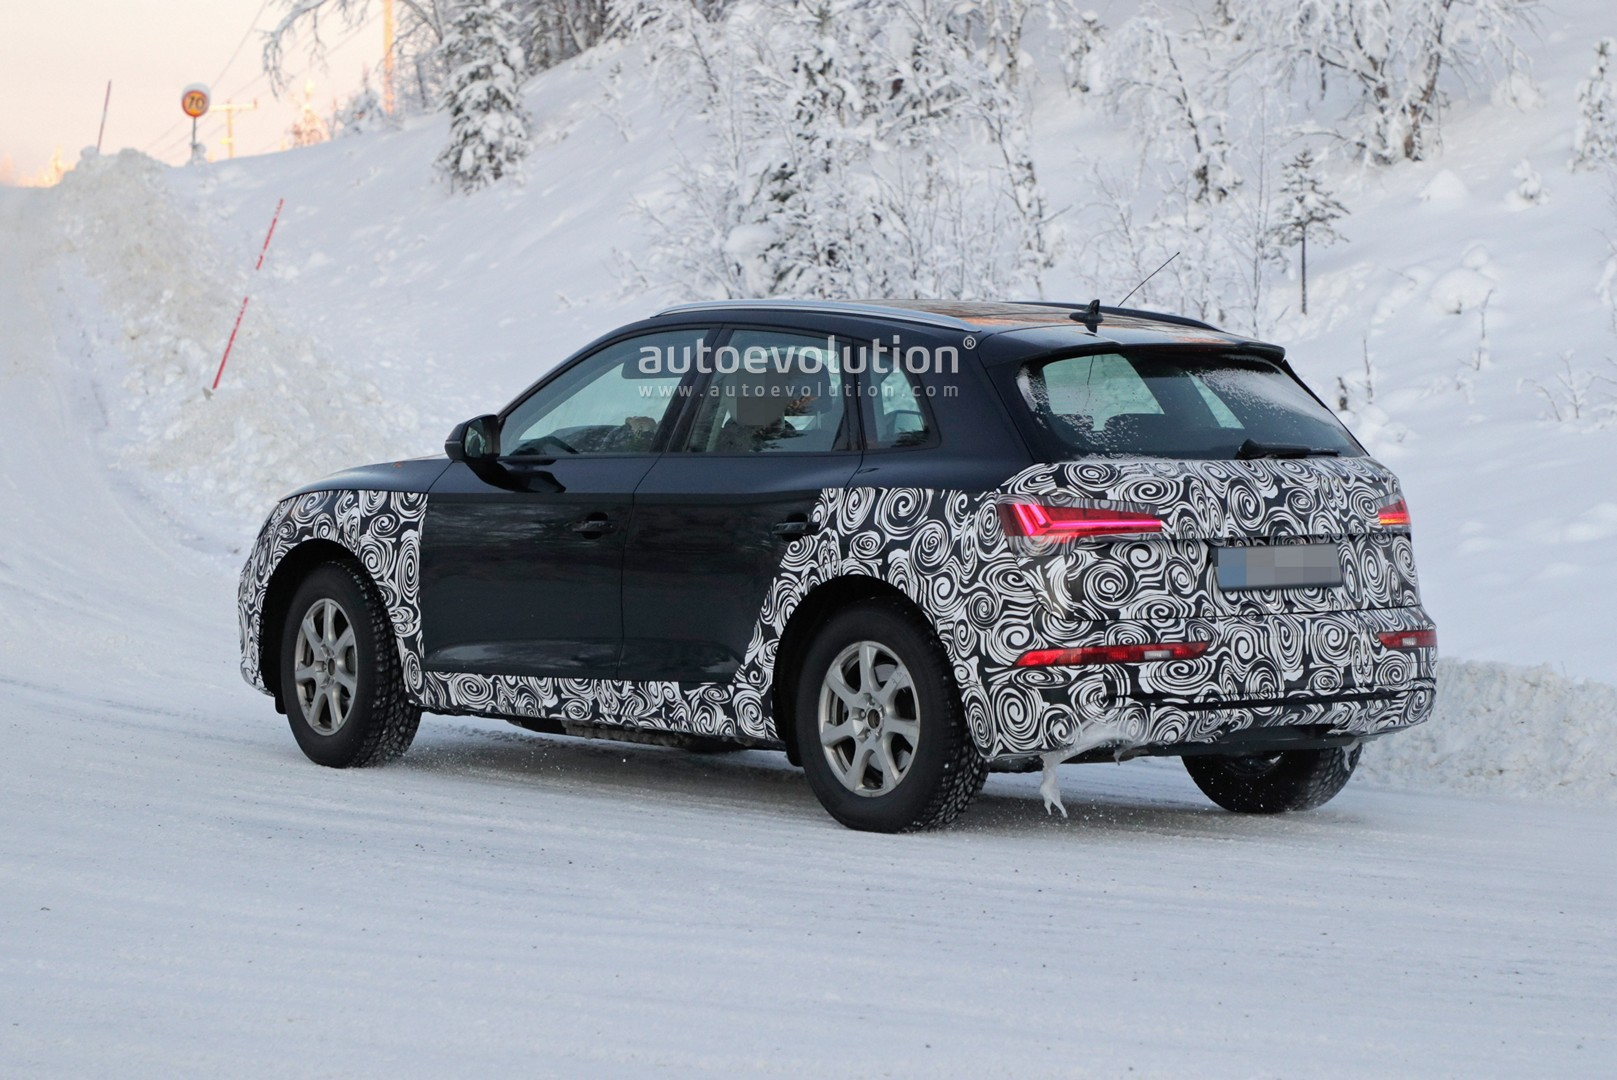 2021 audi q5 facelift spied winter testing with bigger